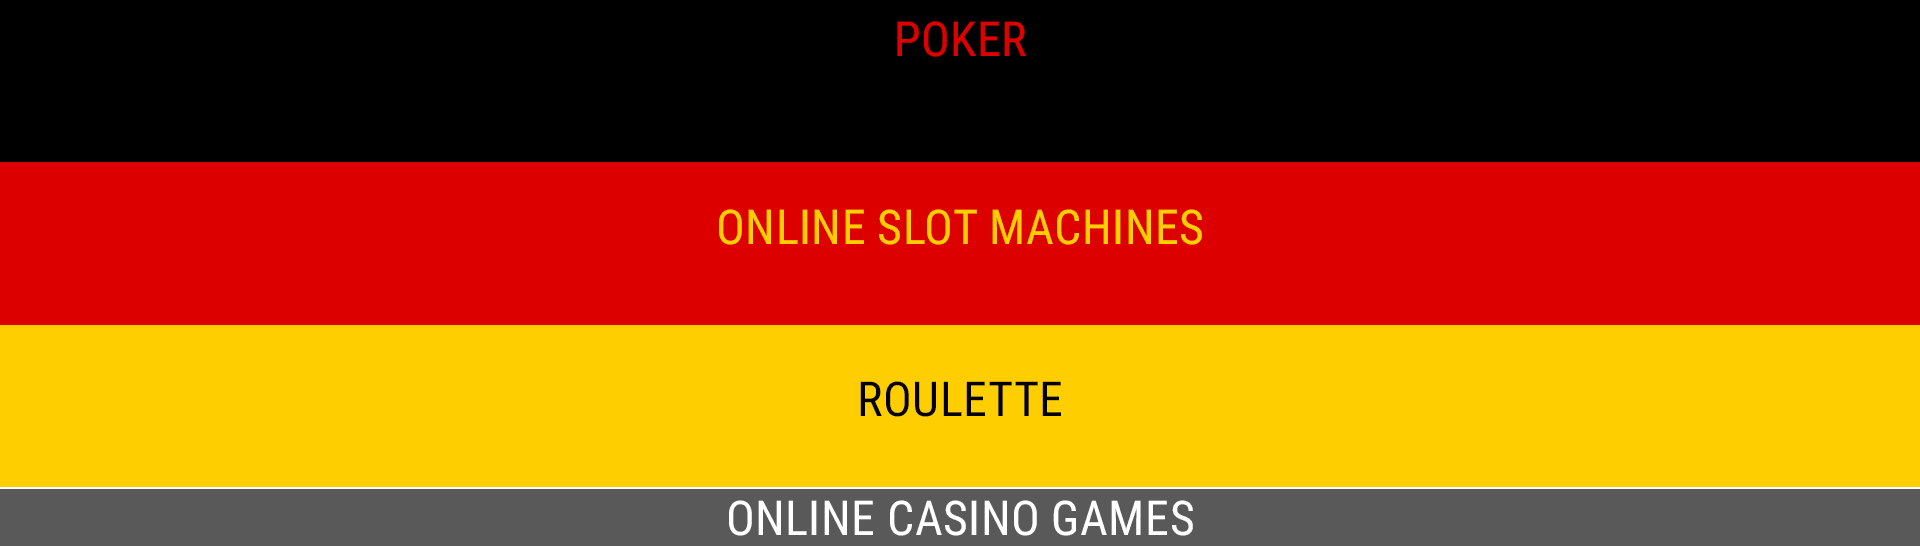 Online casino games in Germany.